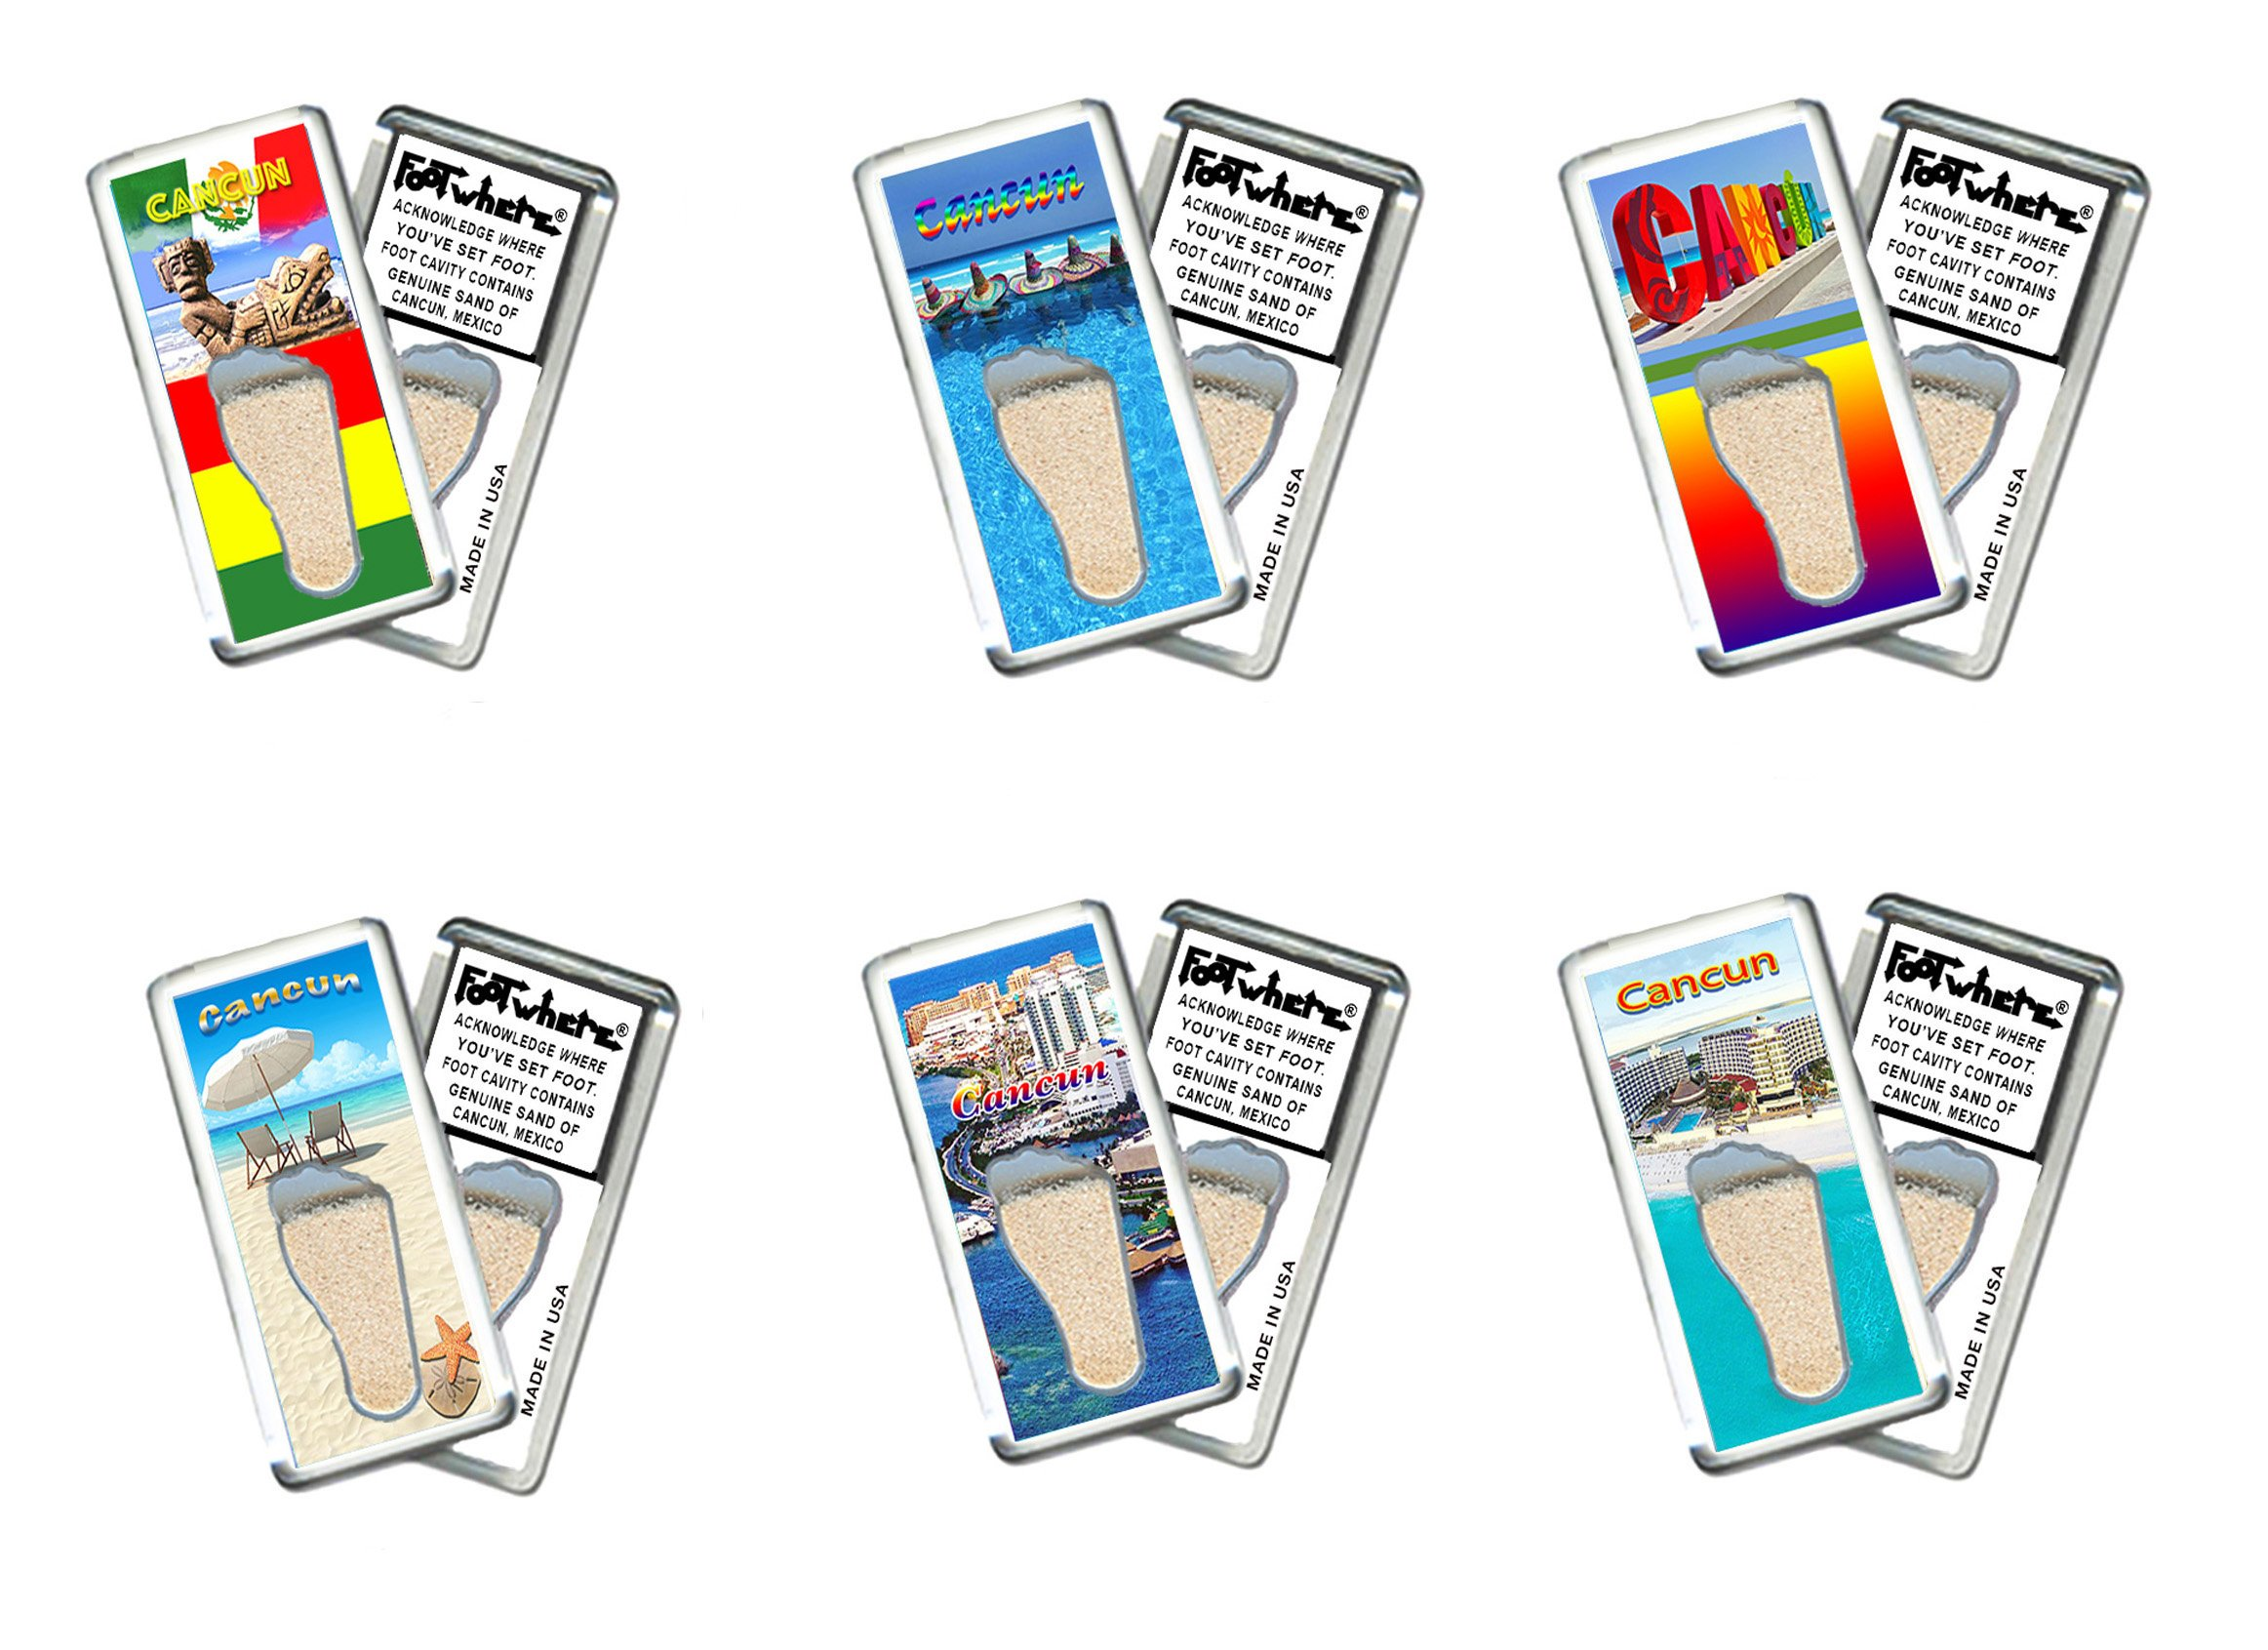 Cancun FootWhere Magnets. 6 Piece Set. Authentic destination souvenir acknowledging where you've set foot. Genuine soil of featured location encased inside foot cavity. Made in USA.